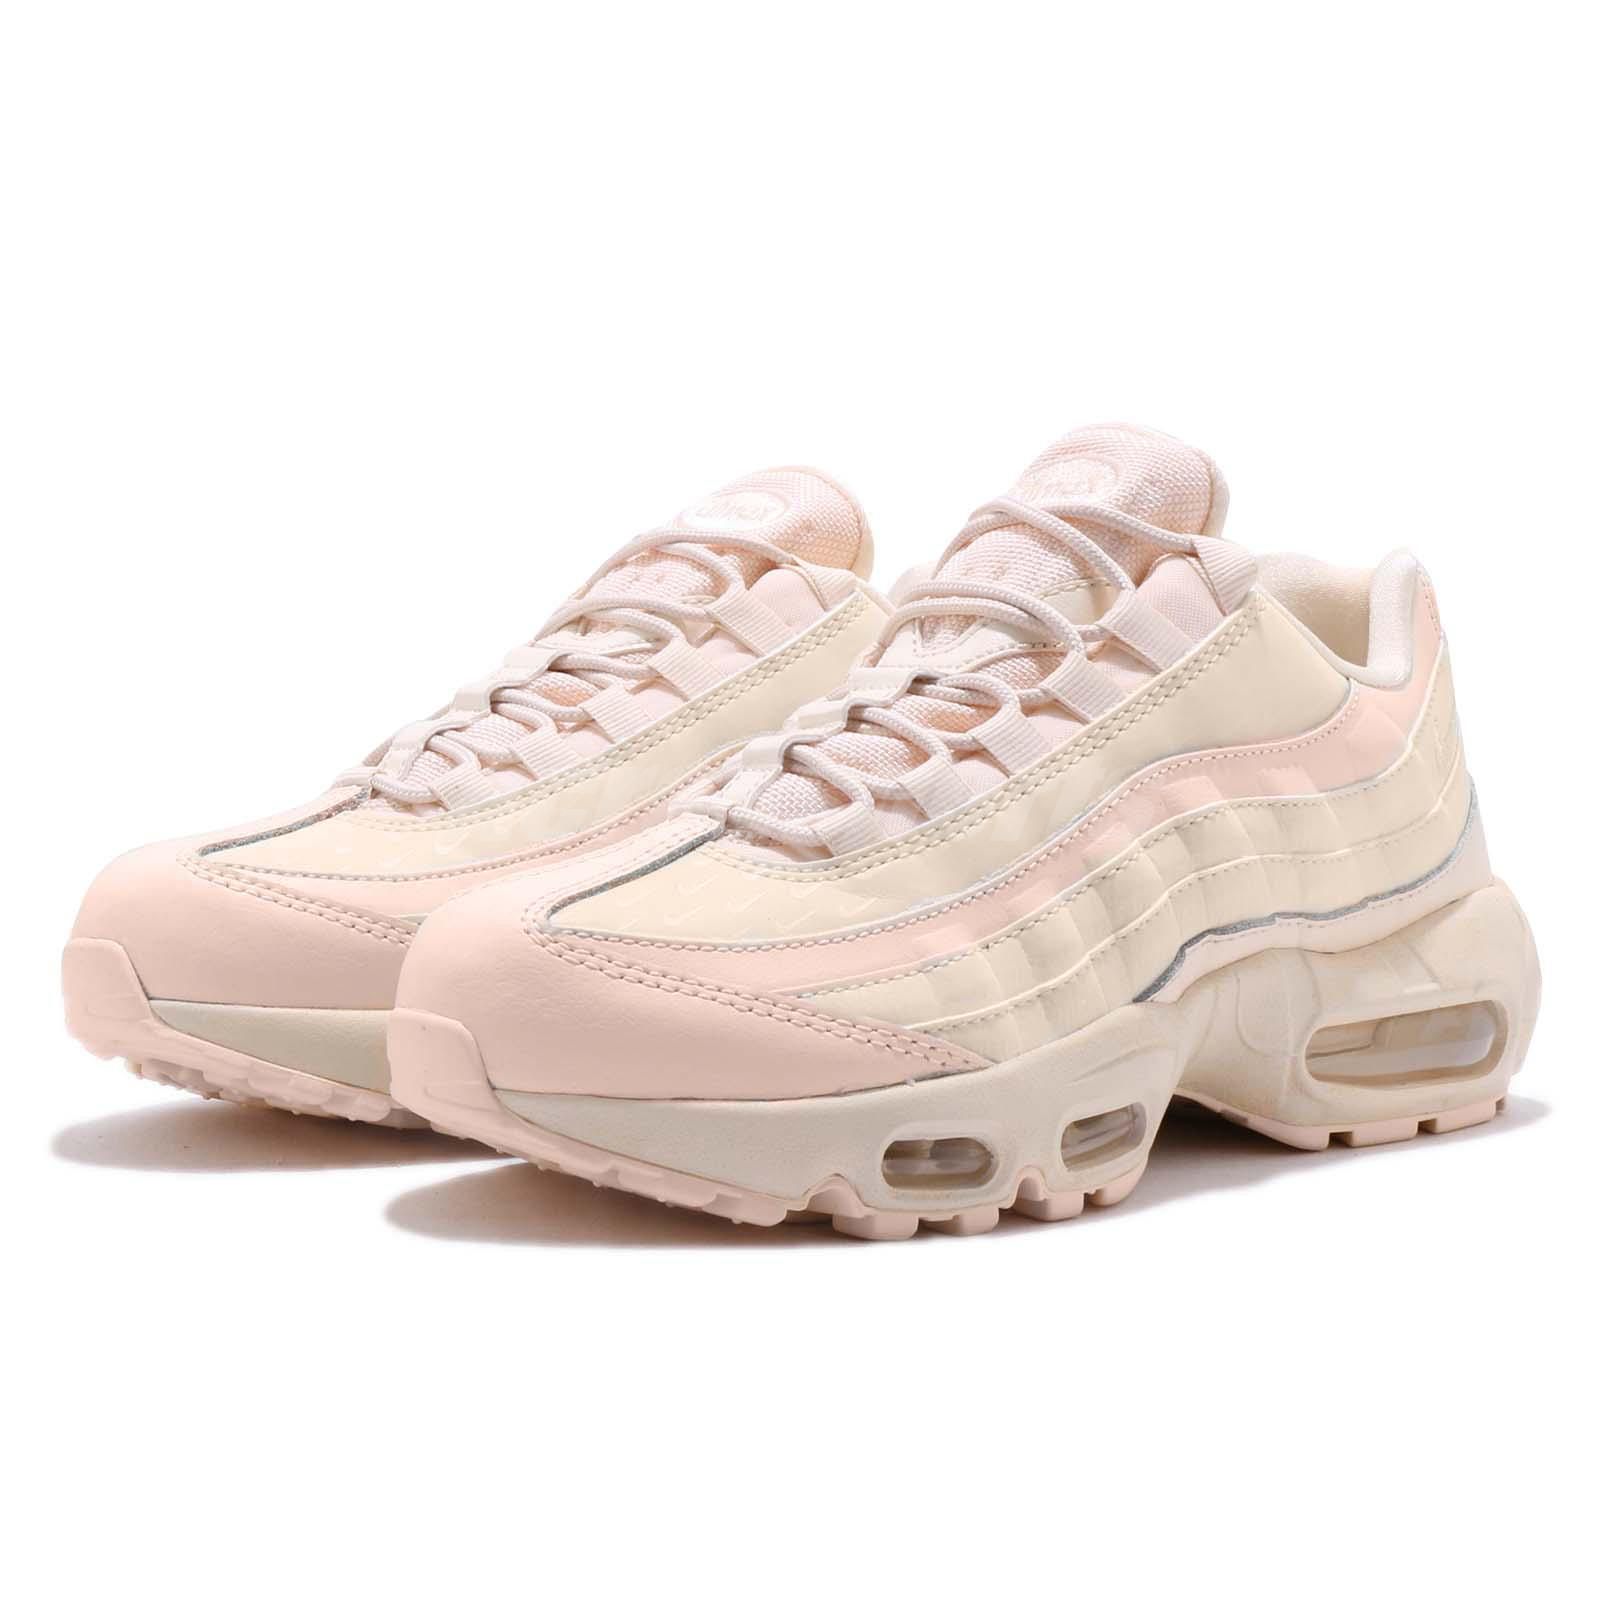 Details about Nike Wmns Air Max 95 LX Lux Reflective Guava Ice Pink Womens Shoes AA1103 800